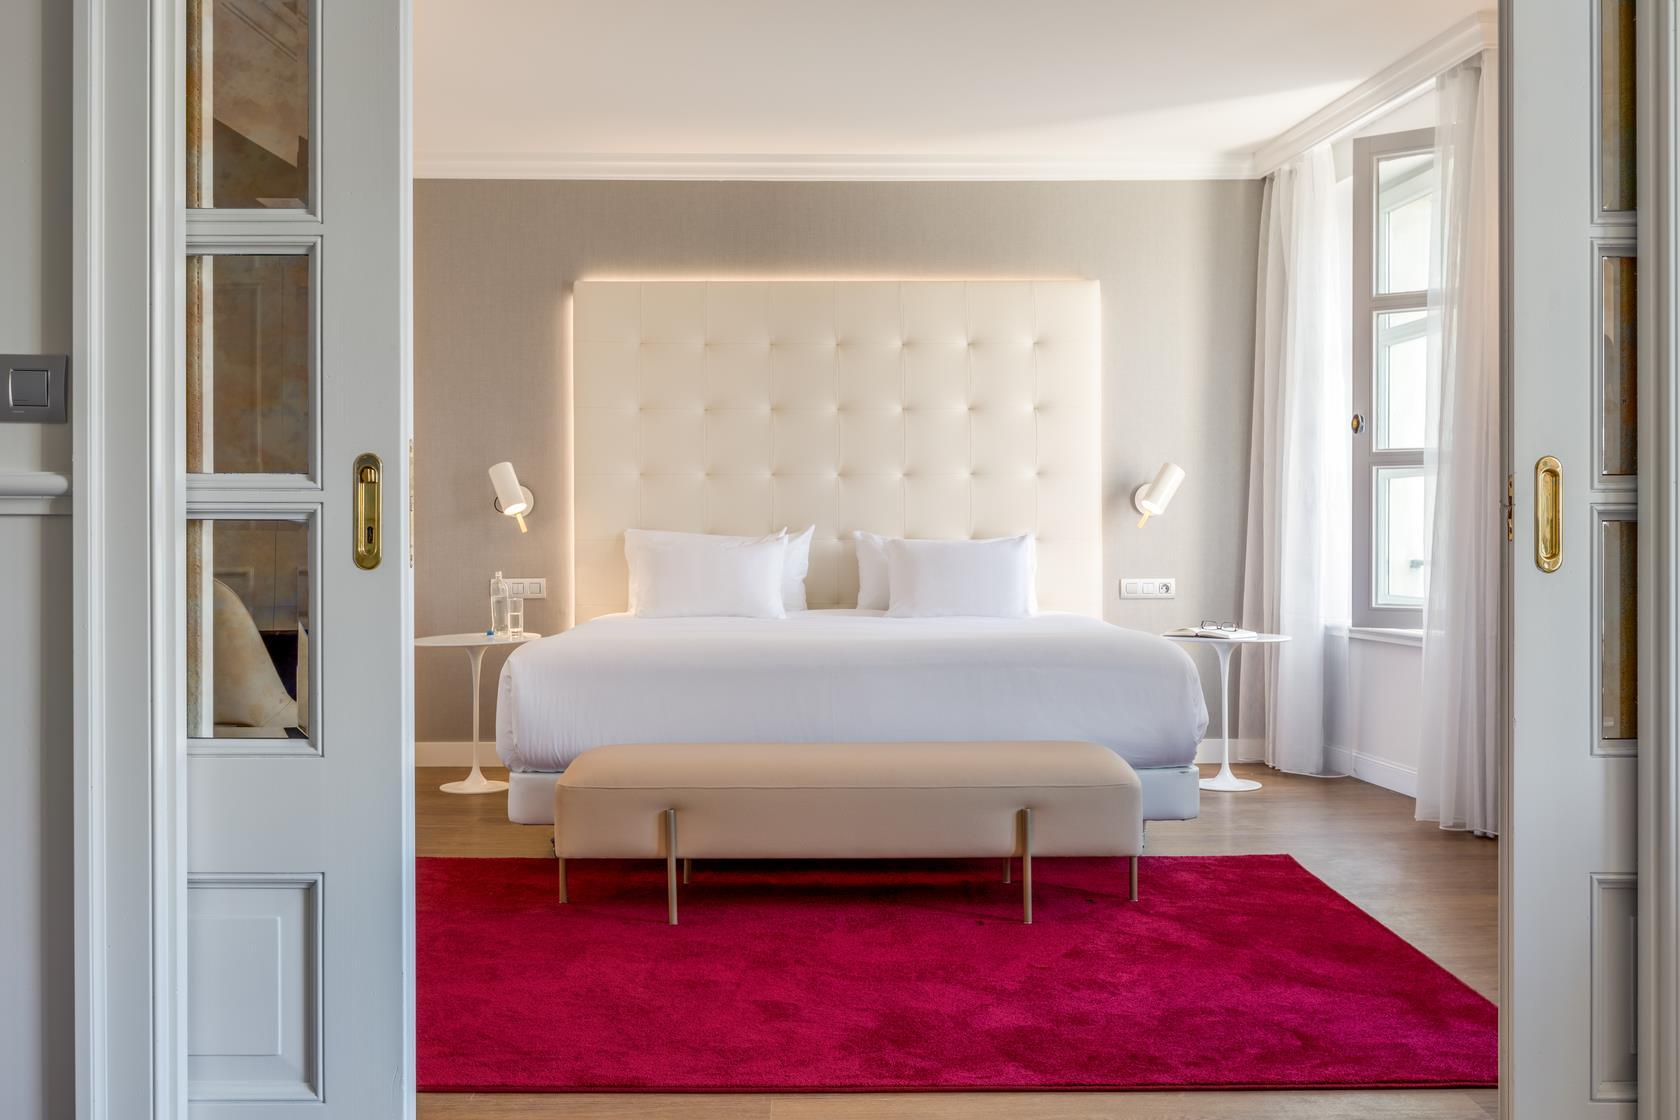 Suite Júnior amb llit supletori i vista ‒ Per a 2 adults i 1 nen (Junior Suite for 2 Adults and 1 Child with Extra Bed and View)